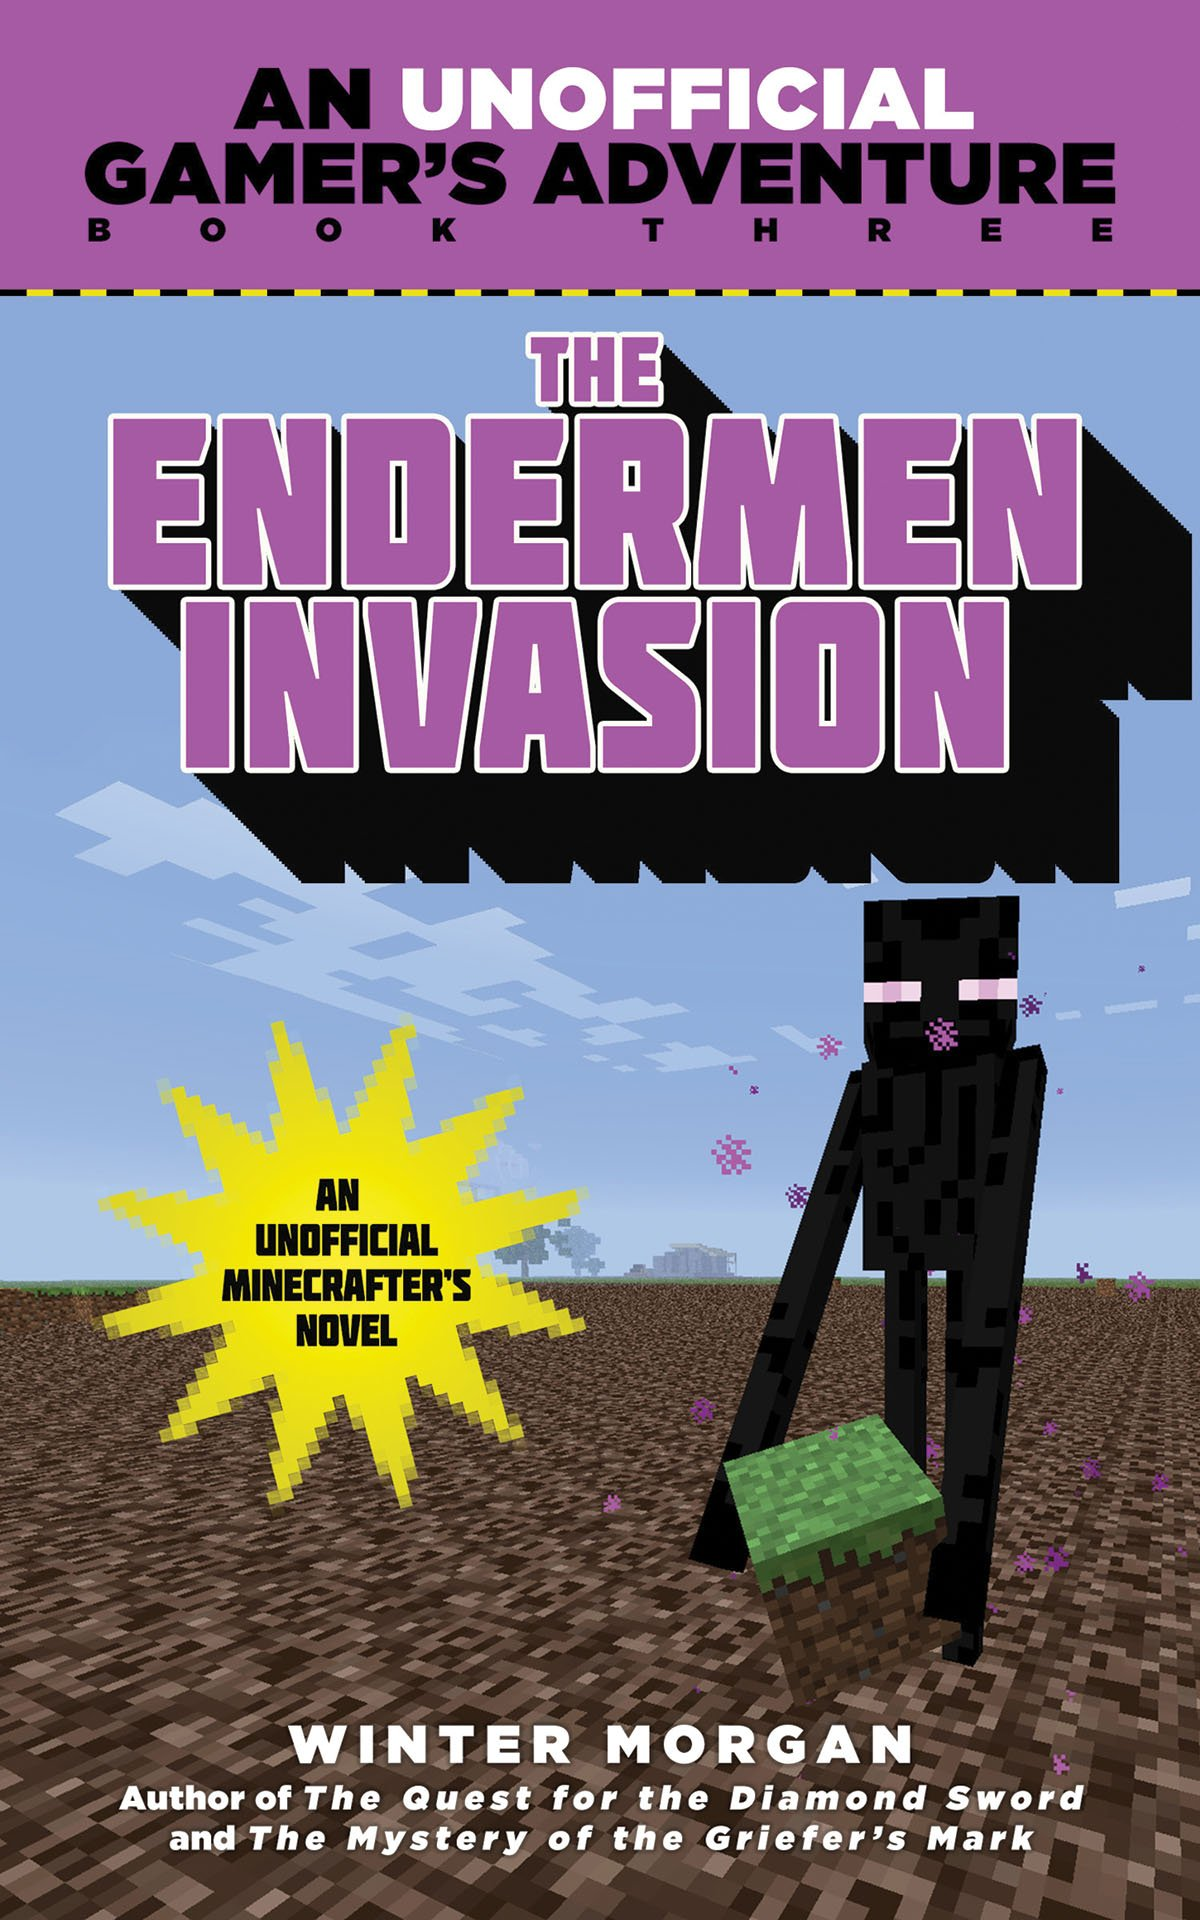 Endermen Invasion Unofficial Gamers Adventure product image